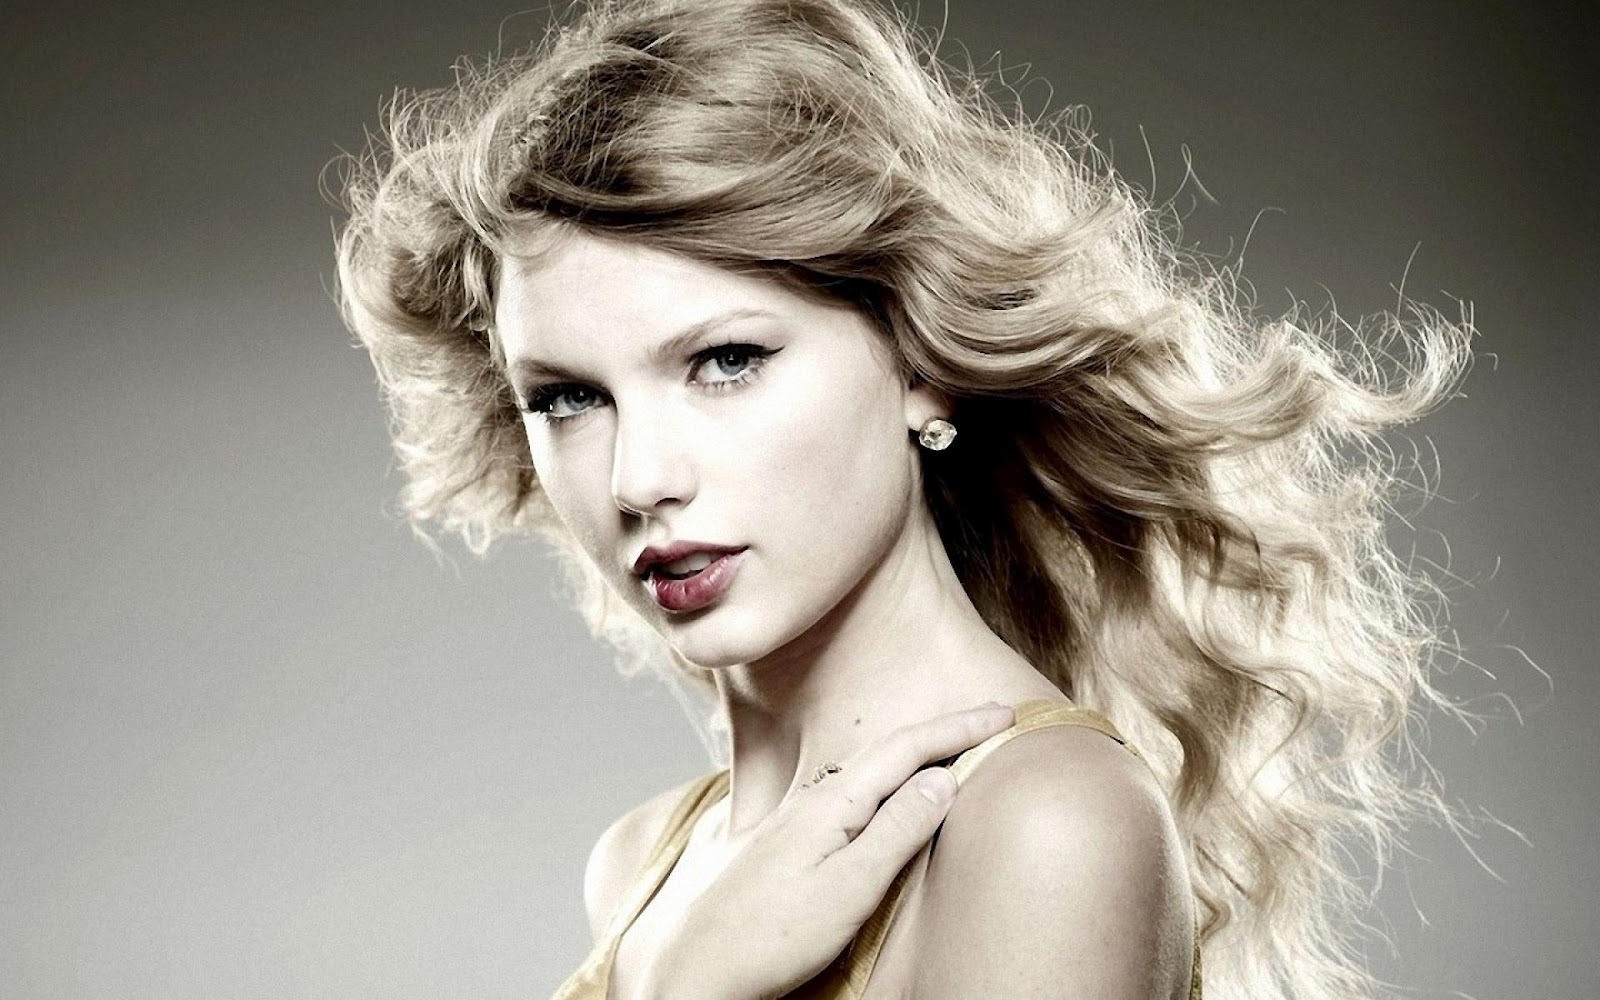 http://4.bp.blogspot.com/-2NXNT1D2IEM/UHVPFzqHXPI/AAAAAAAAUxk/RCNpY1mK-BE/s1600/Taylor-Swift-hd-Wallpapers-2012_1.jpg